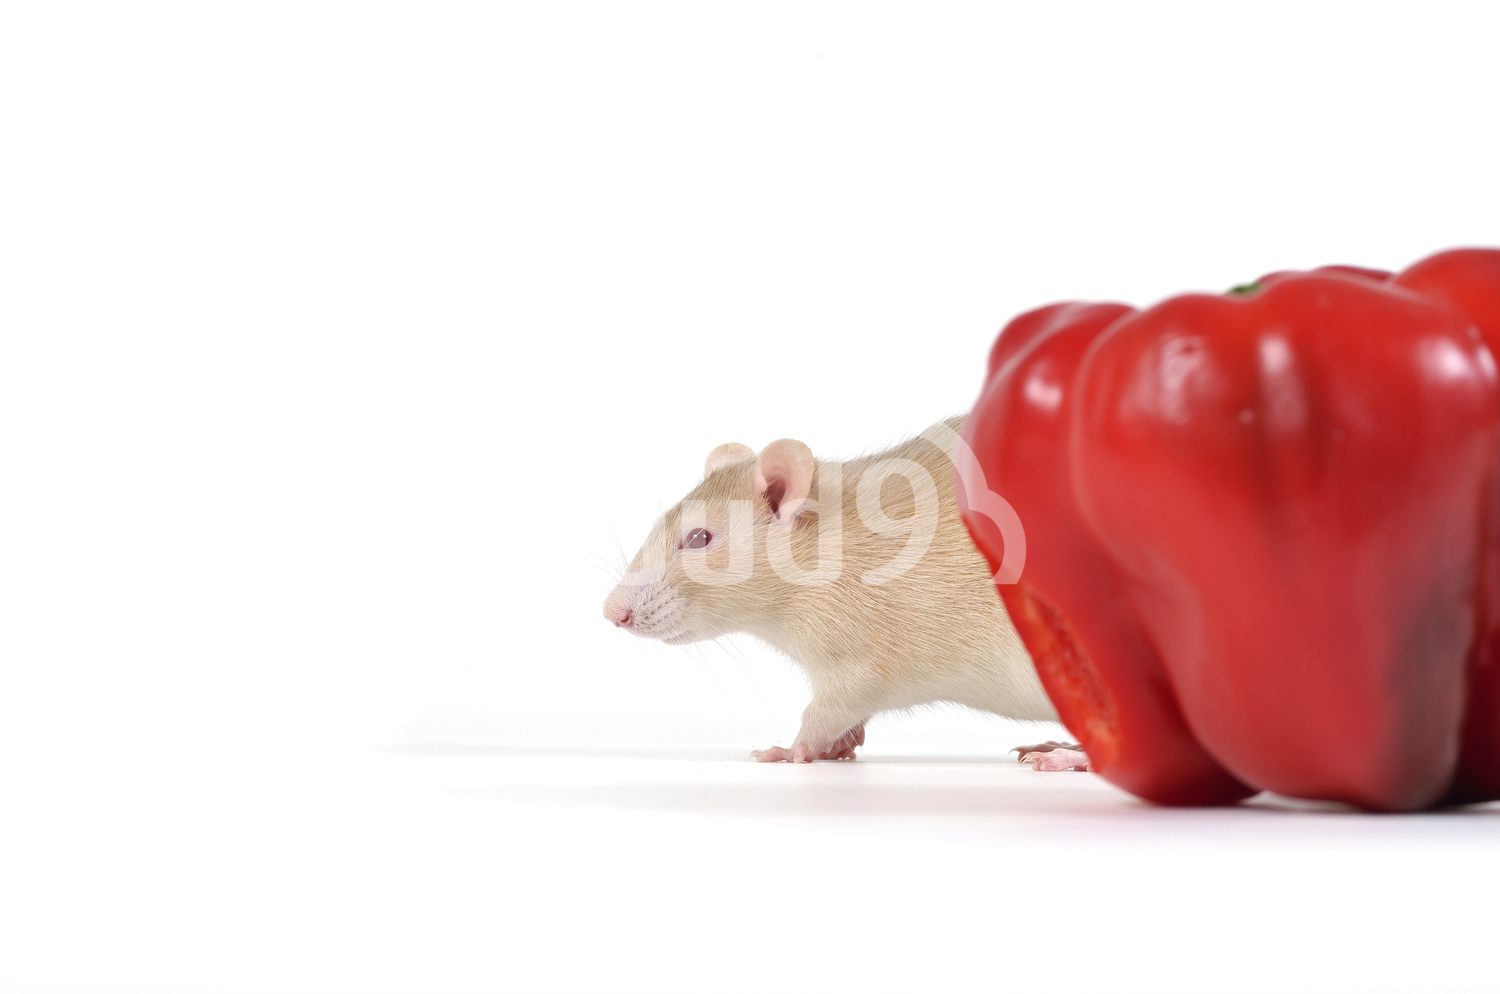 Rat and vegetables.